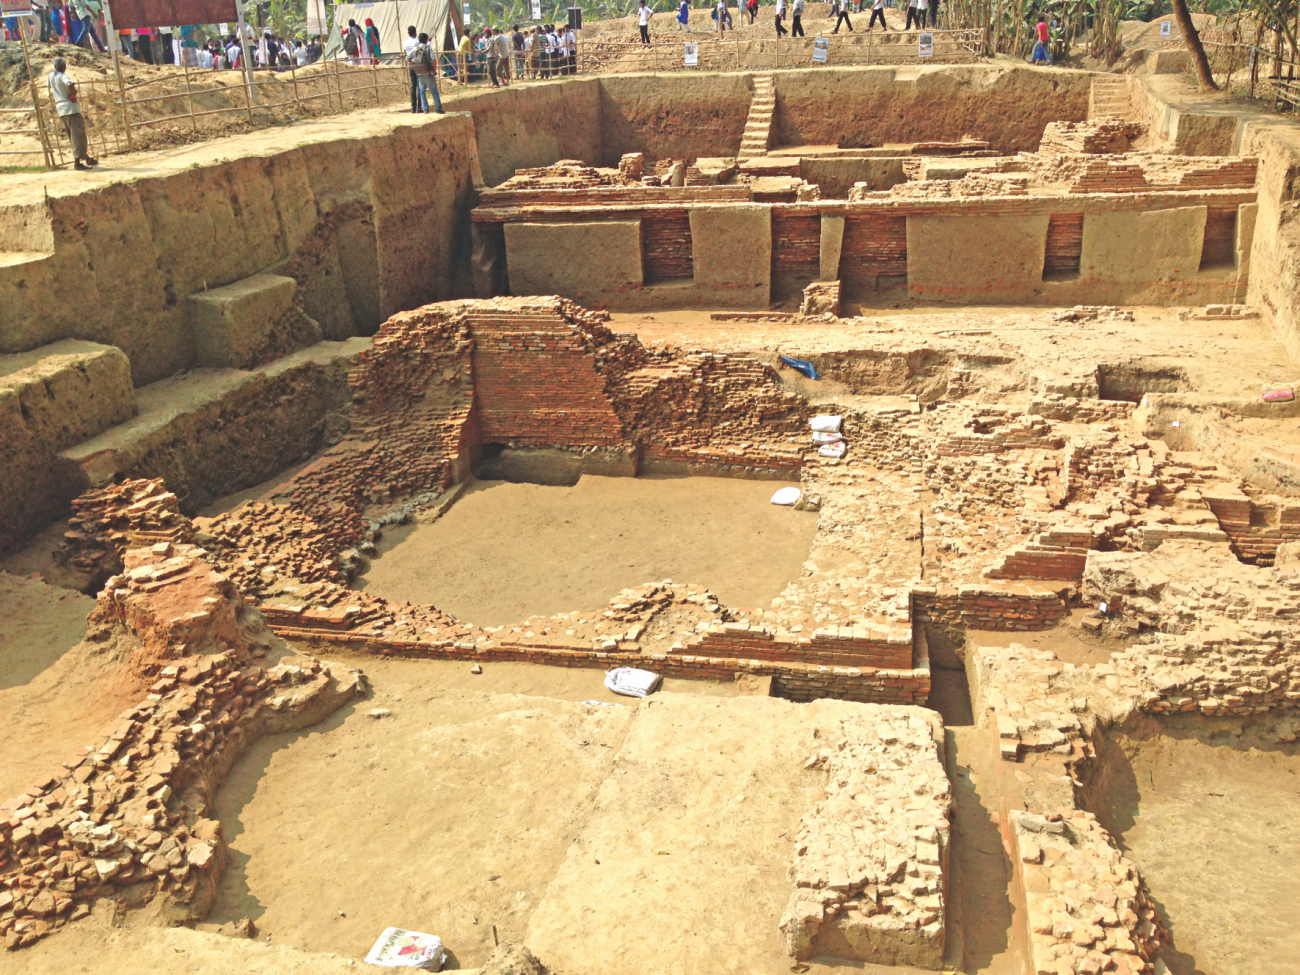 Agrashar Vikrampur Foundation in collaboration with Hunan Provincial Institute of Cultural Relics and Archaeology of China excavated this over 1,000-year-old Buddhist temple in Nateshwar in Munshiganj. The dig has so far revealed structures, terracotta motifs, and a road of the temple. Photo: Pinaki Roy